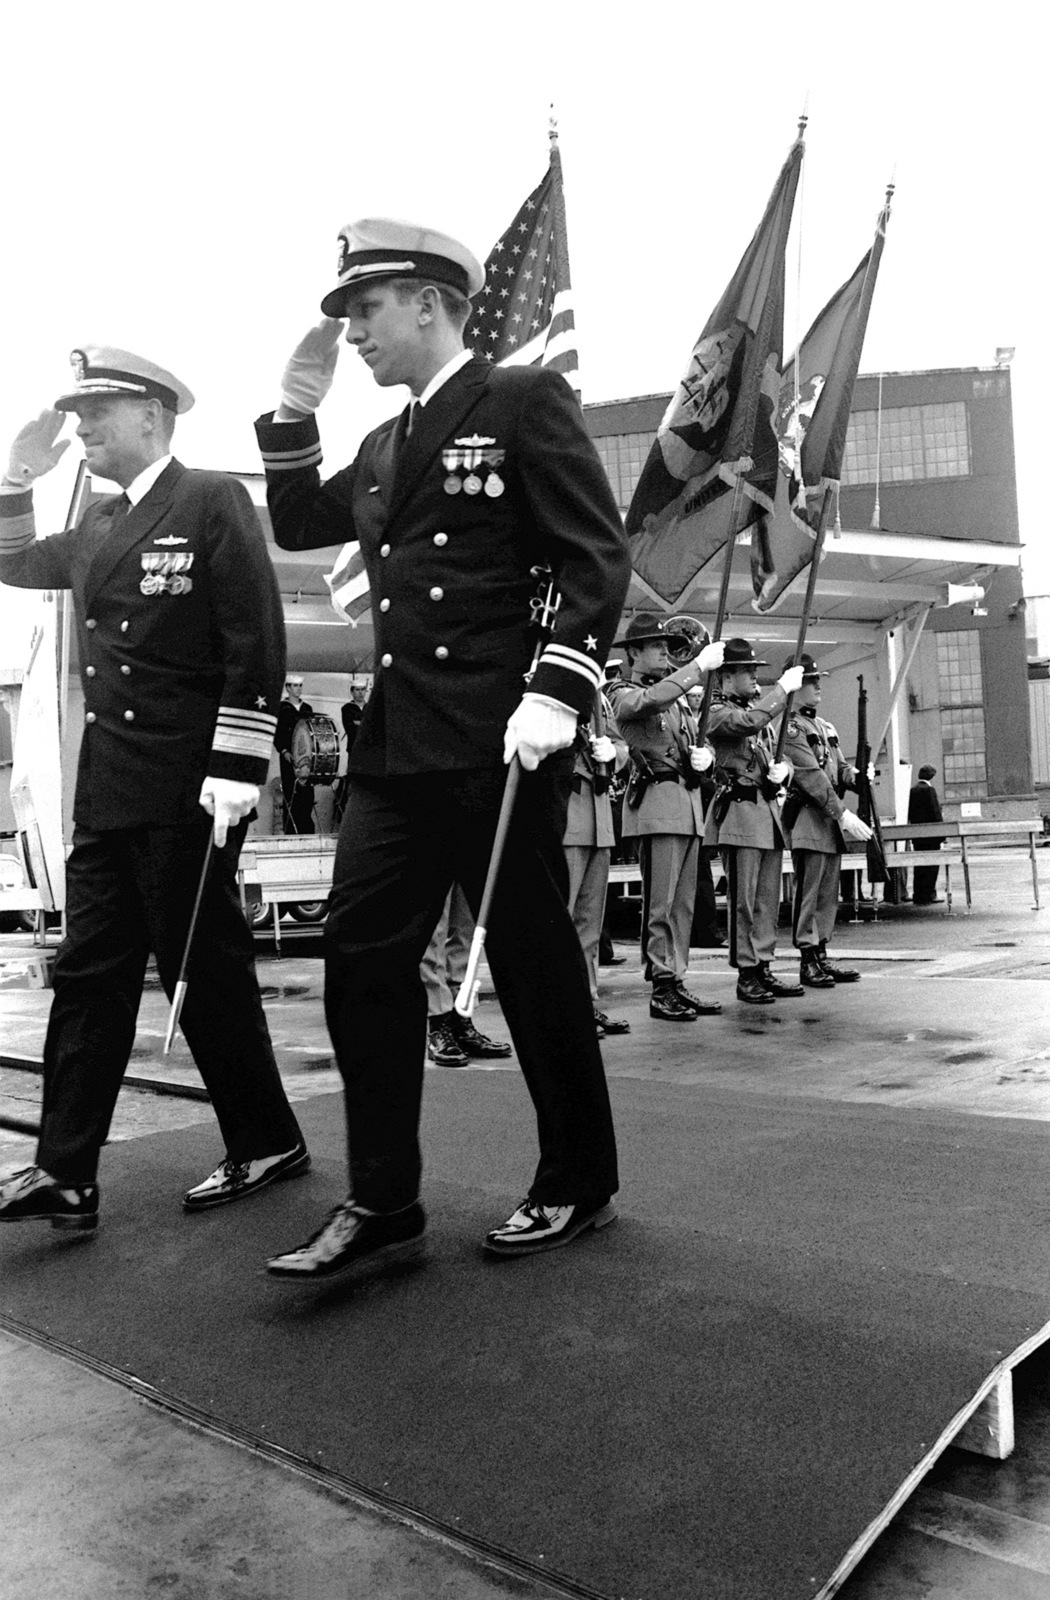 VADM Robert T. Monroe, director, Research, Development, Test and Evaluation, along with a fellow officer, salutes the colors prior to boarding the guided missile frigate USS AUBREY FITCH (FFG-34) for its commissioning ceremony